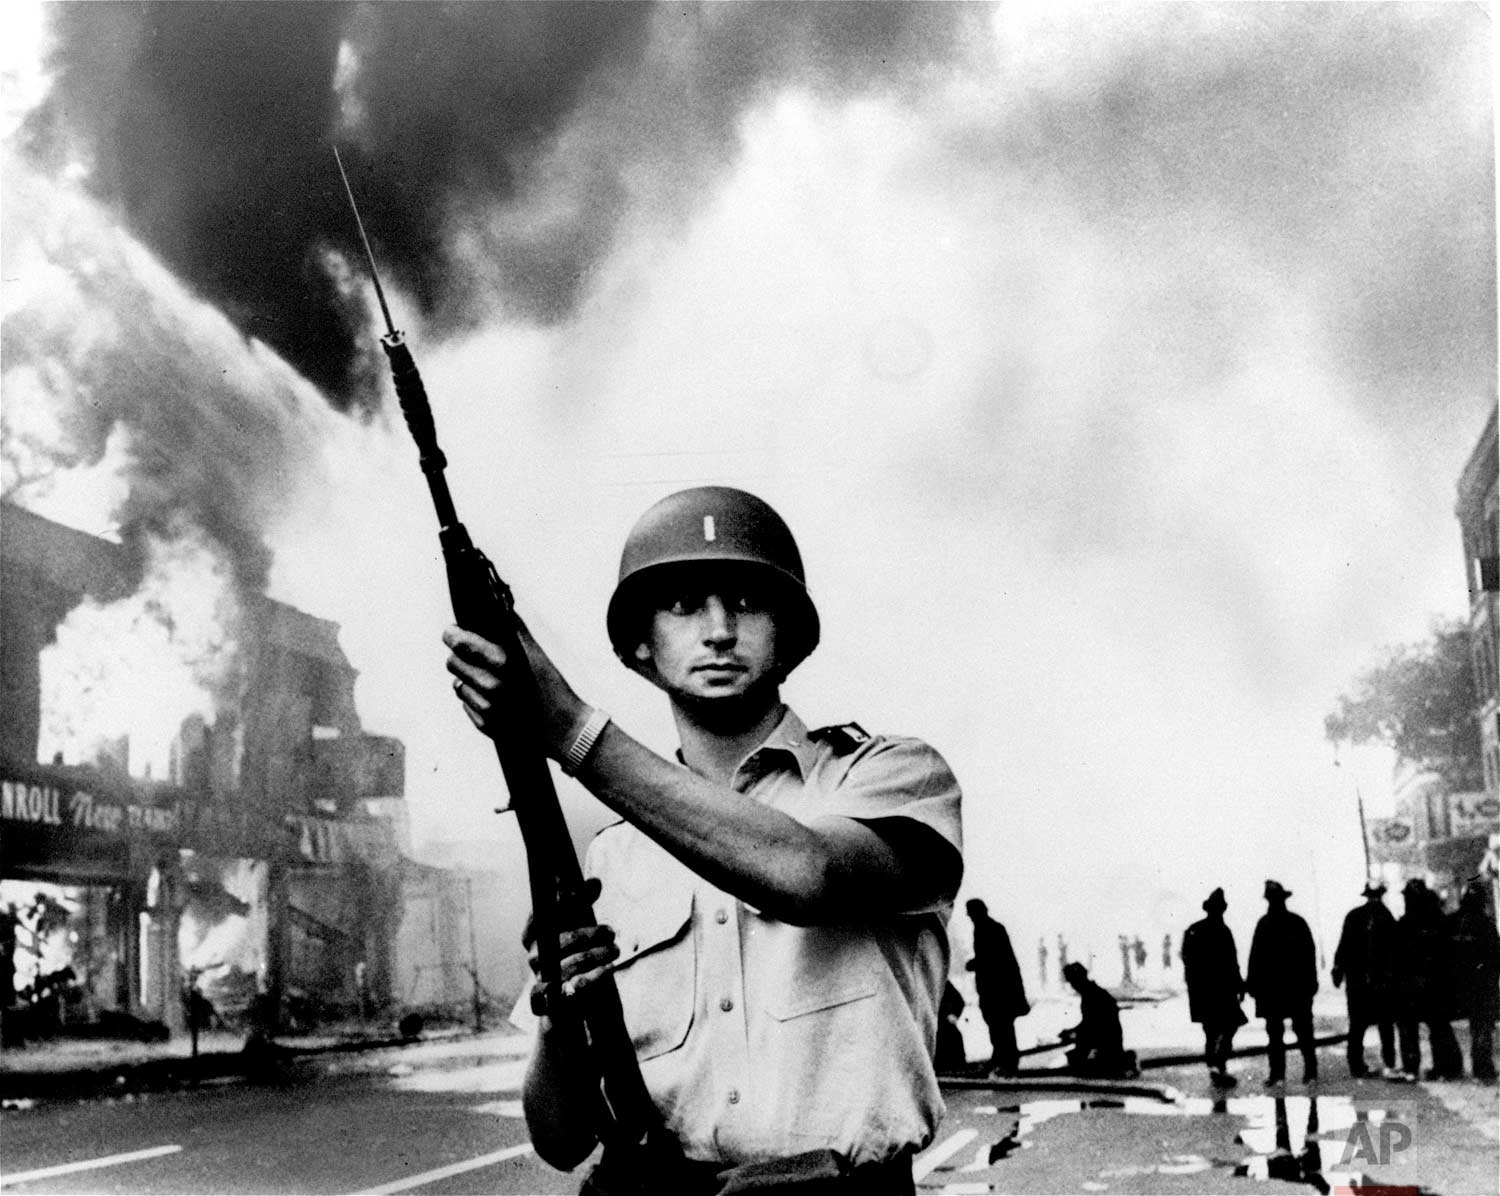 In this July 1967 photo, a National Guardsman stands at a Detroit intersection during riots in the city. Detroit wasn't the first of the riots in the summer of 1967, and it was far from the last. Buffalo, New York, and Newark, New Jersey, preceded it; in the course of the summer, more than 150 cases of civil unrest erupted across the United States. (AP Photo)